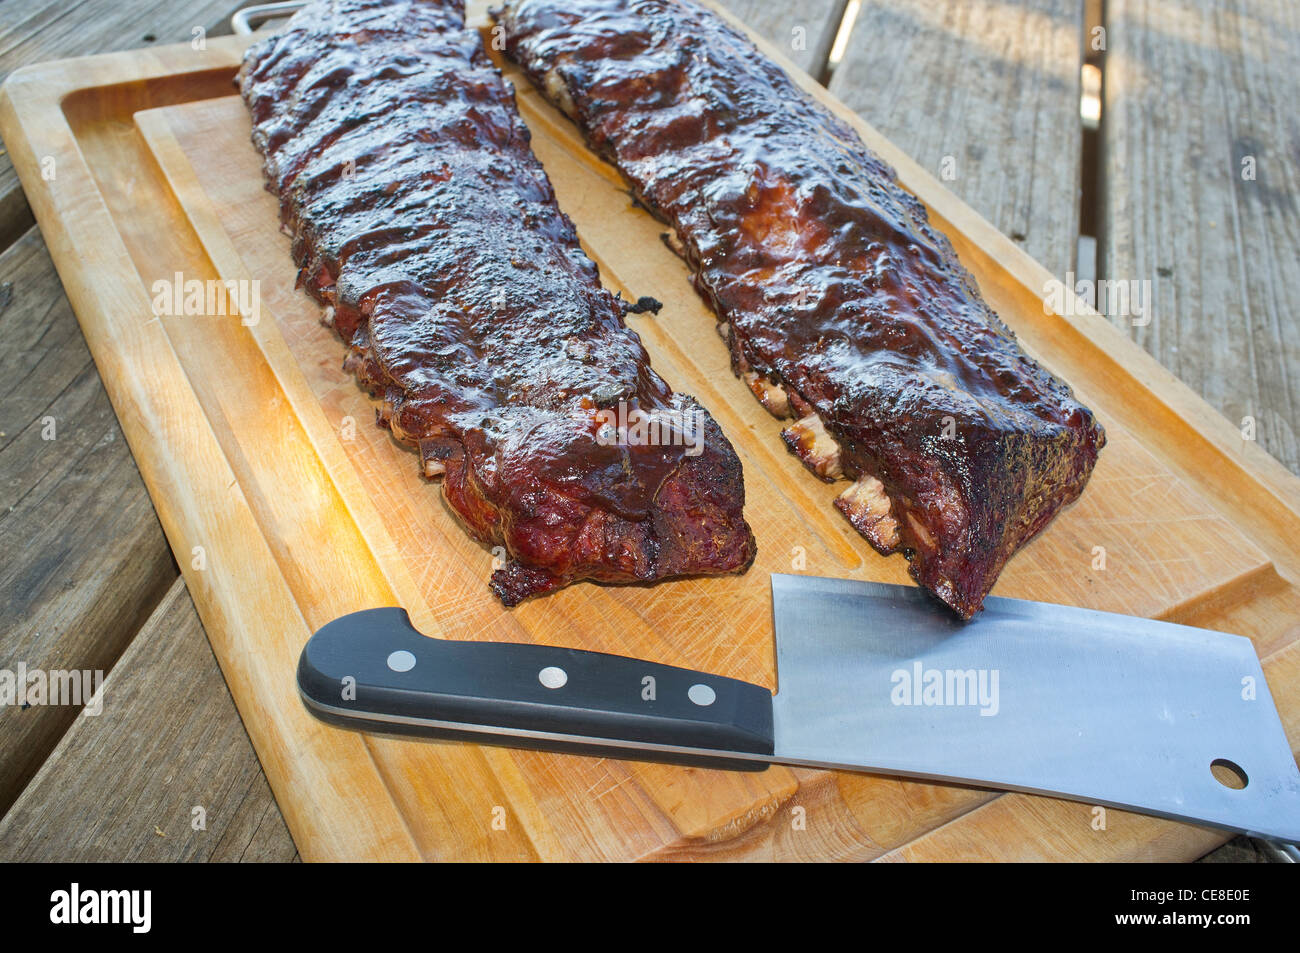 Spare ribs and meat cleaver on a cutting board - Stock Image